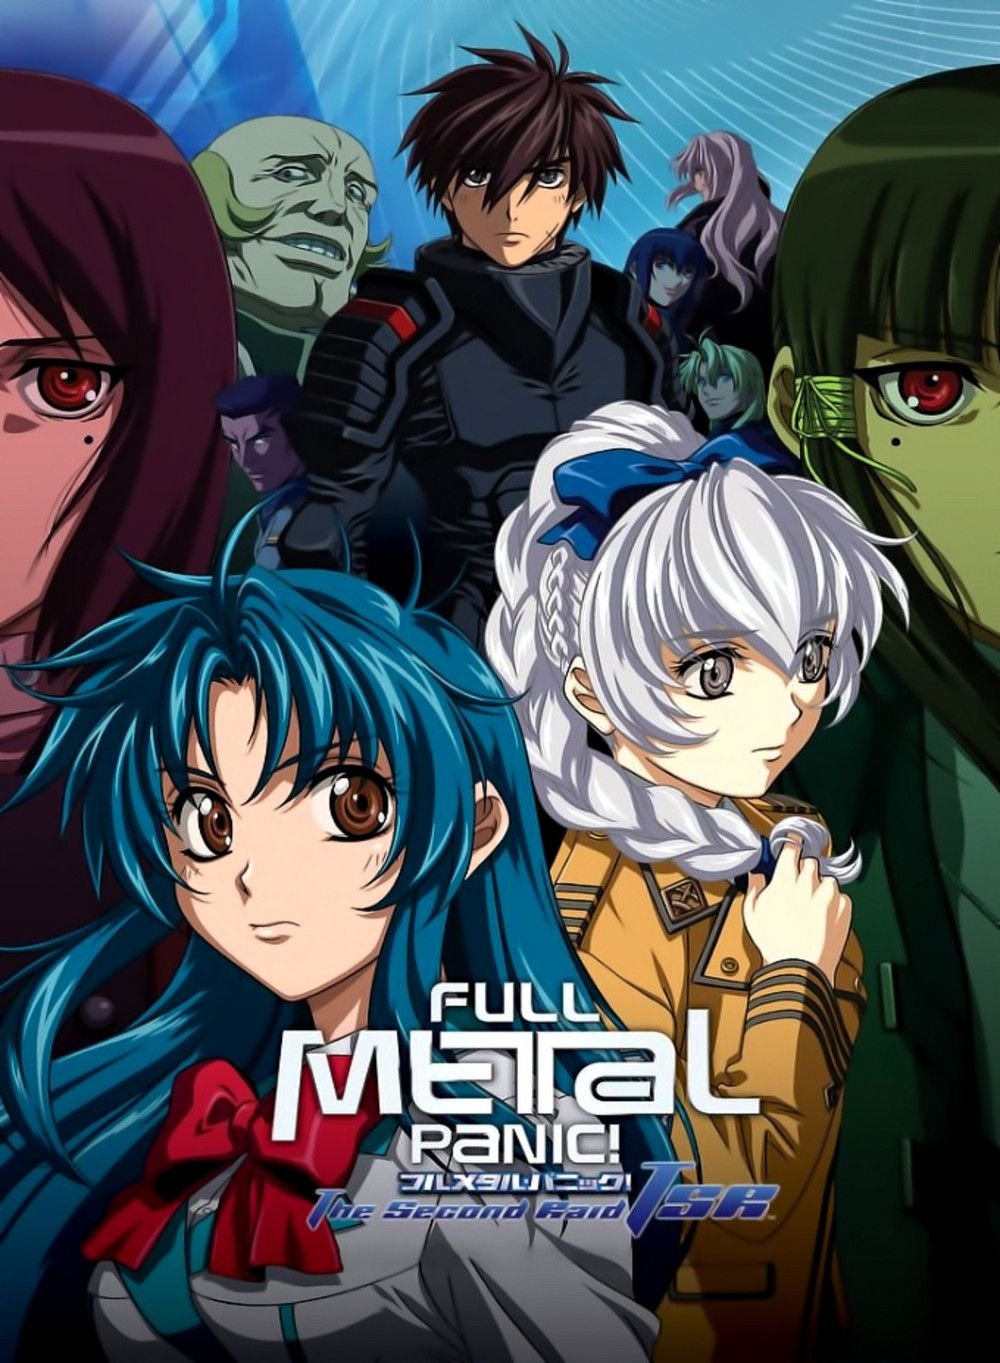 Full Metal Panic! The Second Raid - Anime (2005) streaming VF gratuit complet